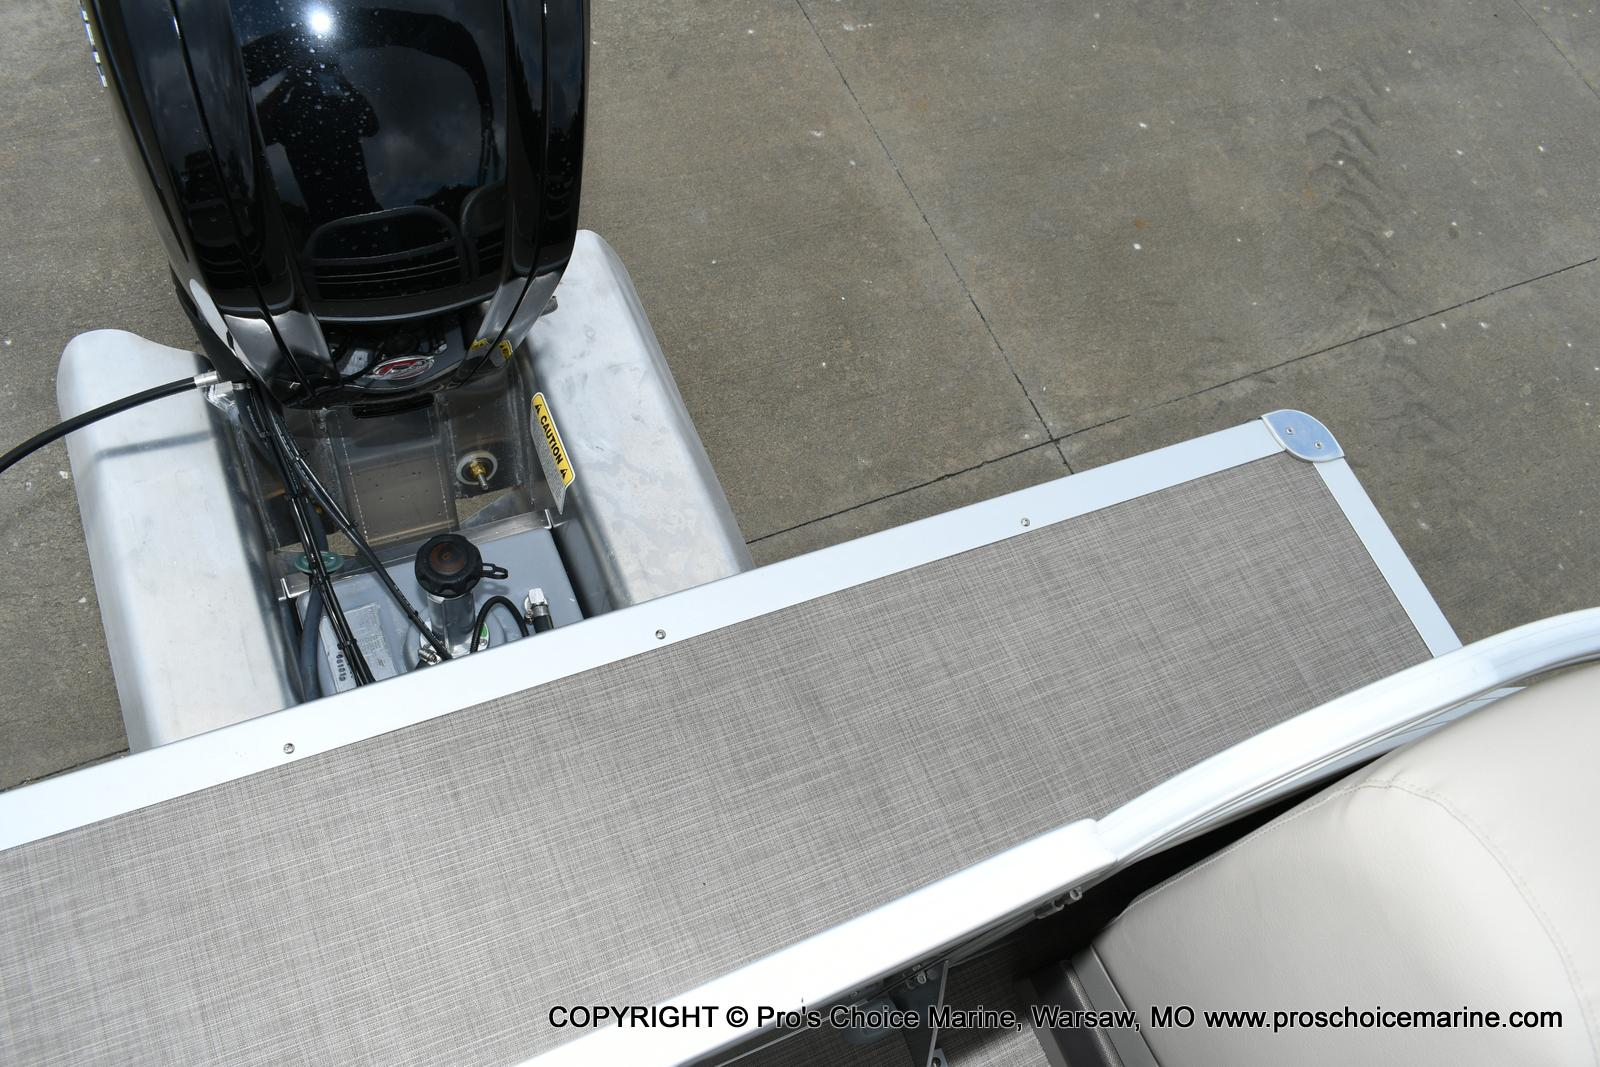 2020 Sun Tracker boat for sale, model of the boat is Party Barge 22 DLX & Image # 13 of 50